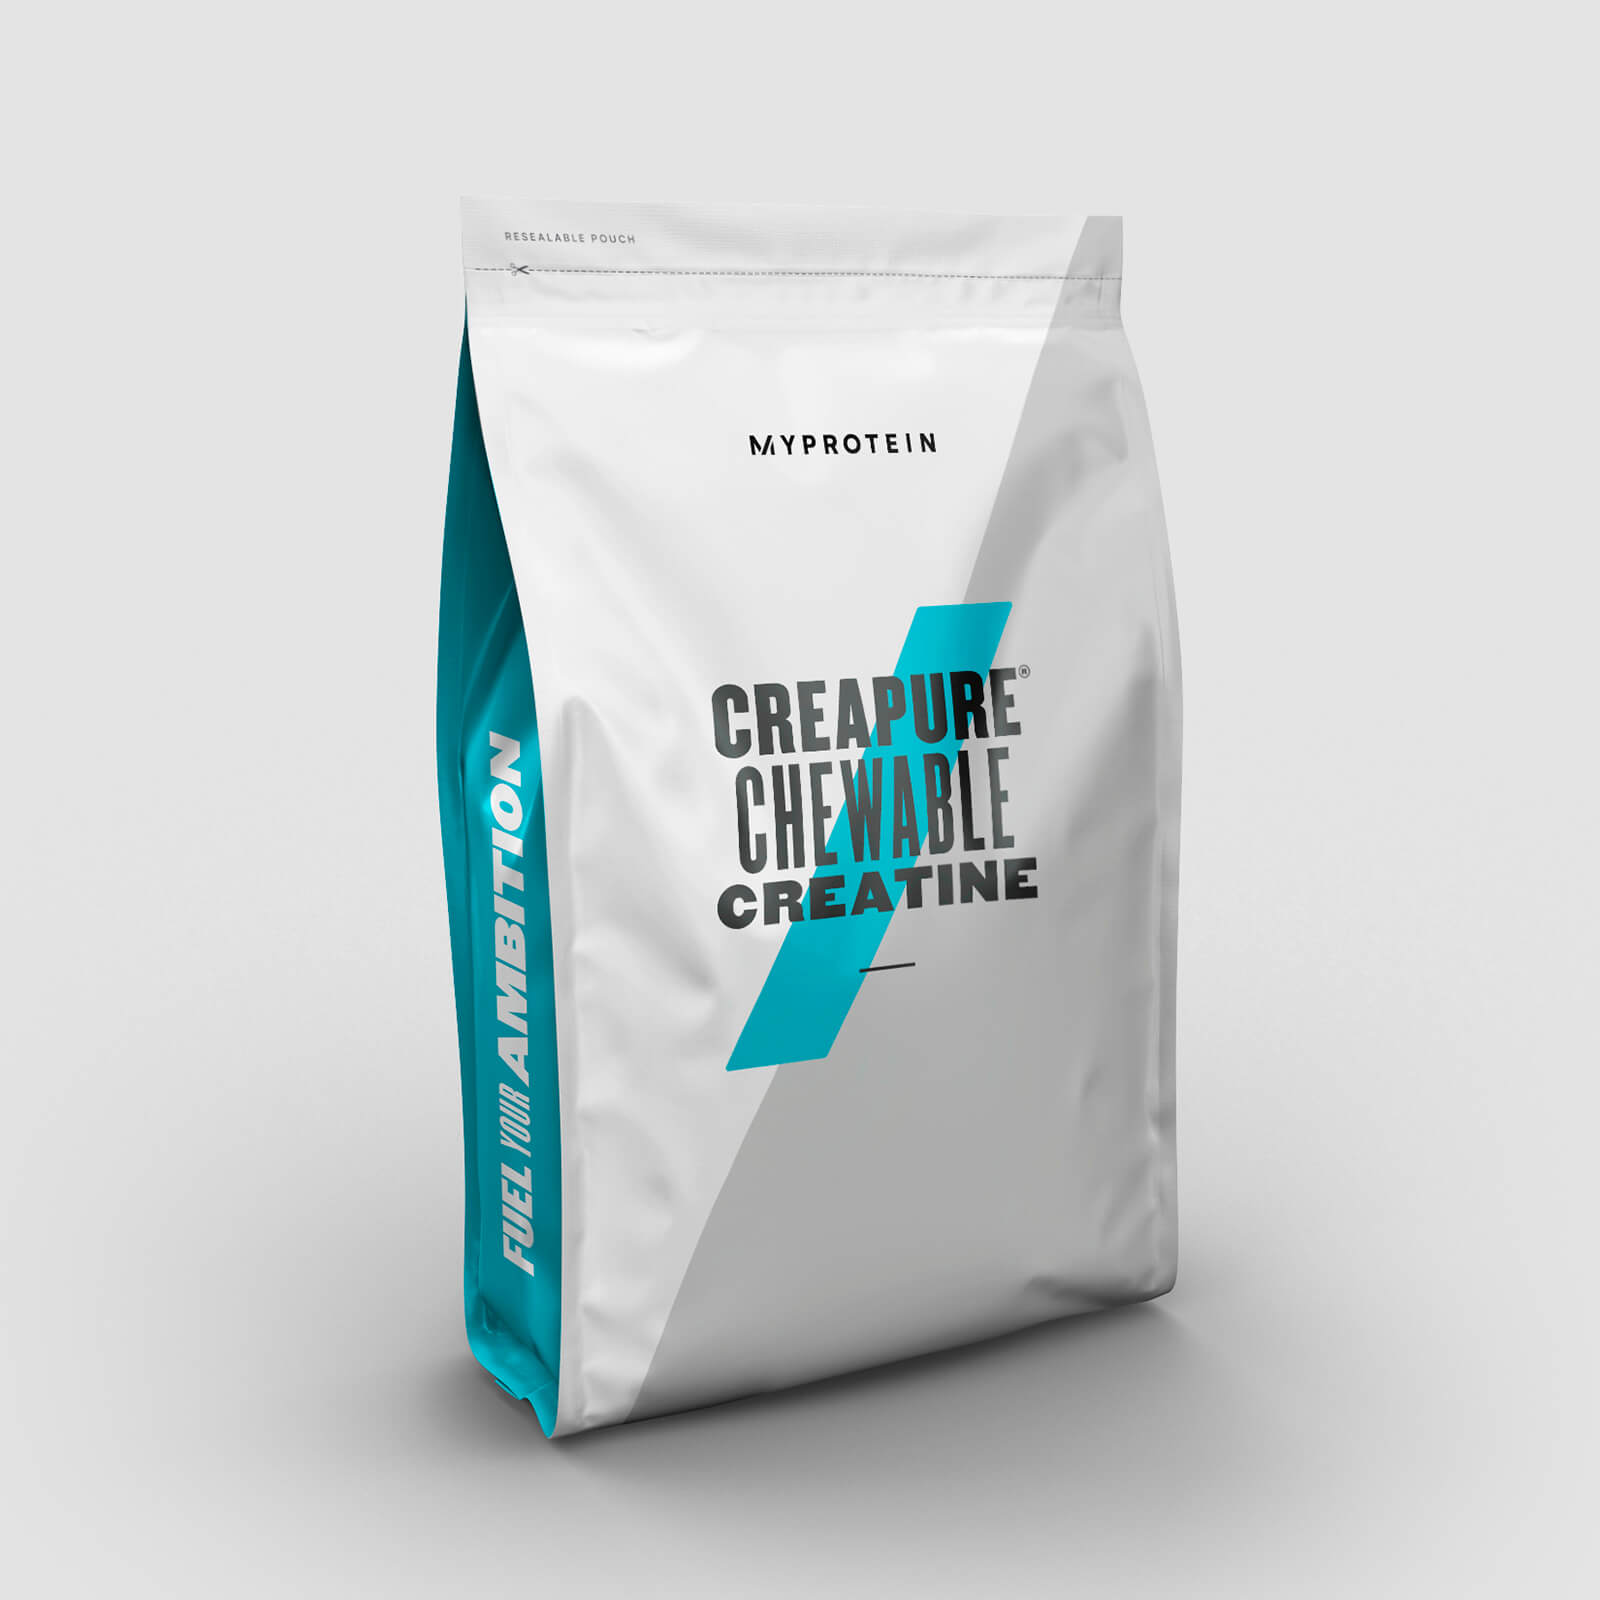 Best Chewable Creatine